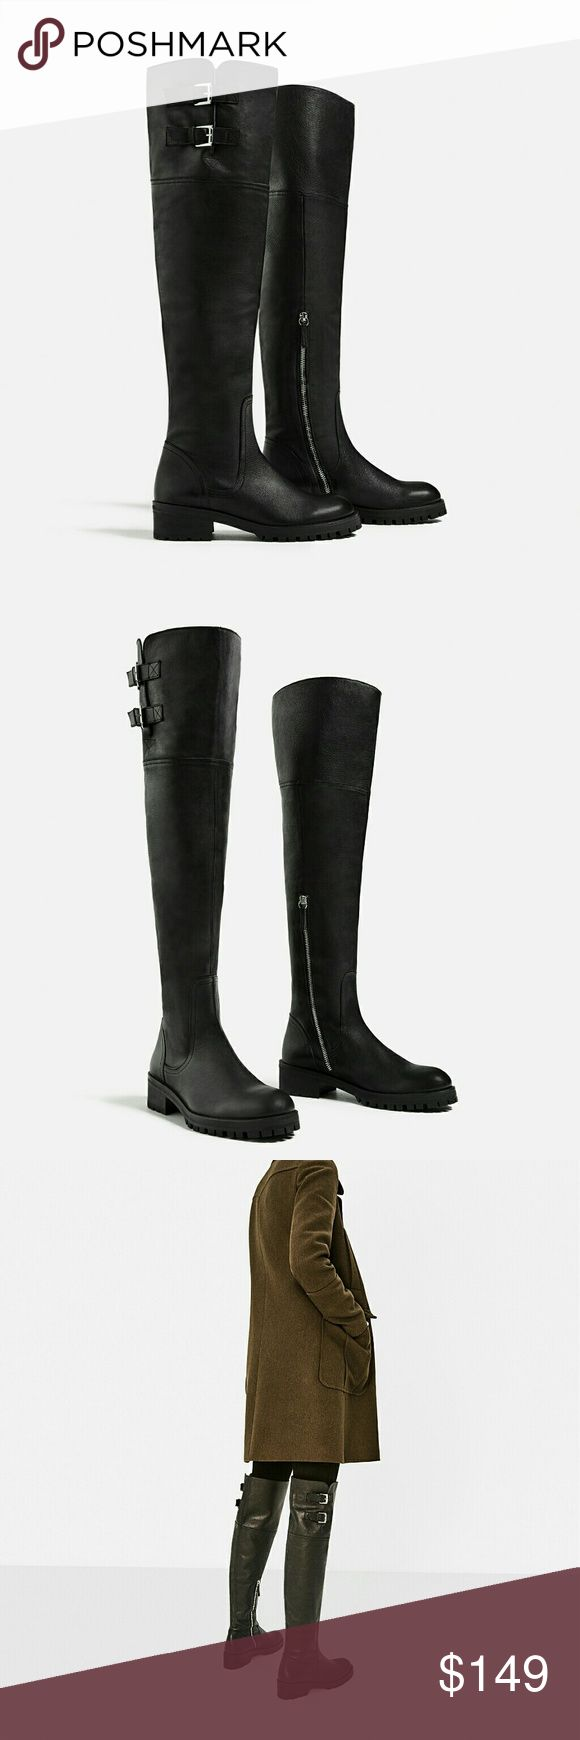 Zara Over the Knee Flat Leather boots black 5 Brand new with tag attached. Gorgeous,  comfortable genuine leather boots with buckle detail, with Zara dust bag. From Zara AW 16 collection. Will consider reasonable offers via offer tab Zara Shoes Over the Knee Boots